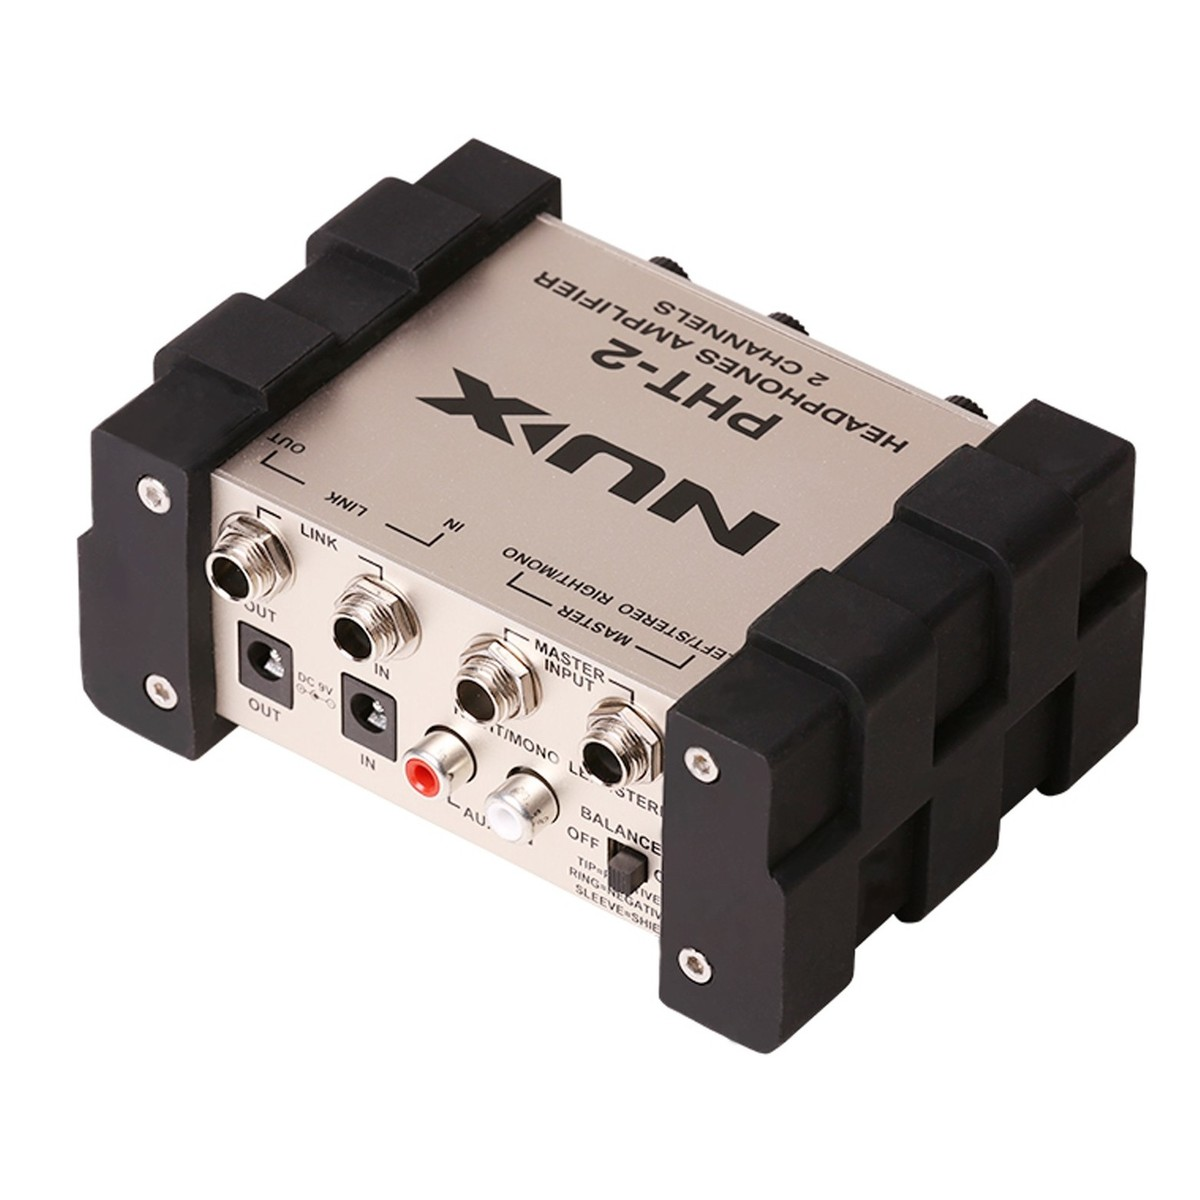 Disc Nux Pht 2 Headphone Amplifier At Gear4music Head Phone Circuit Amp Loading Zoom